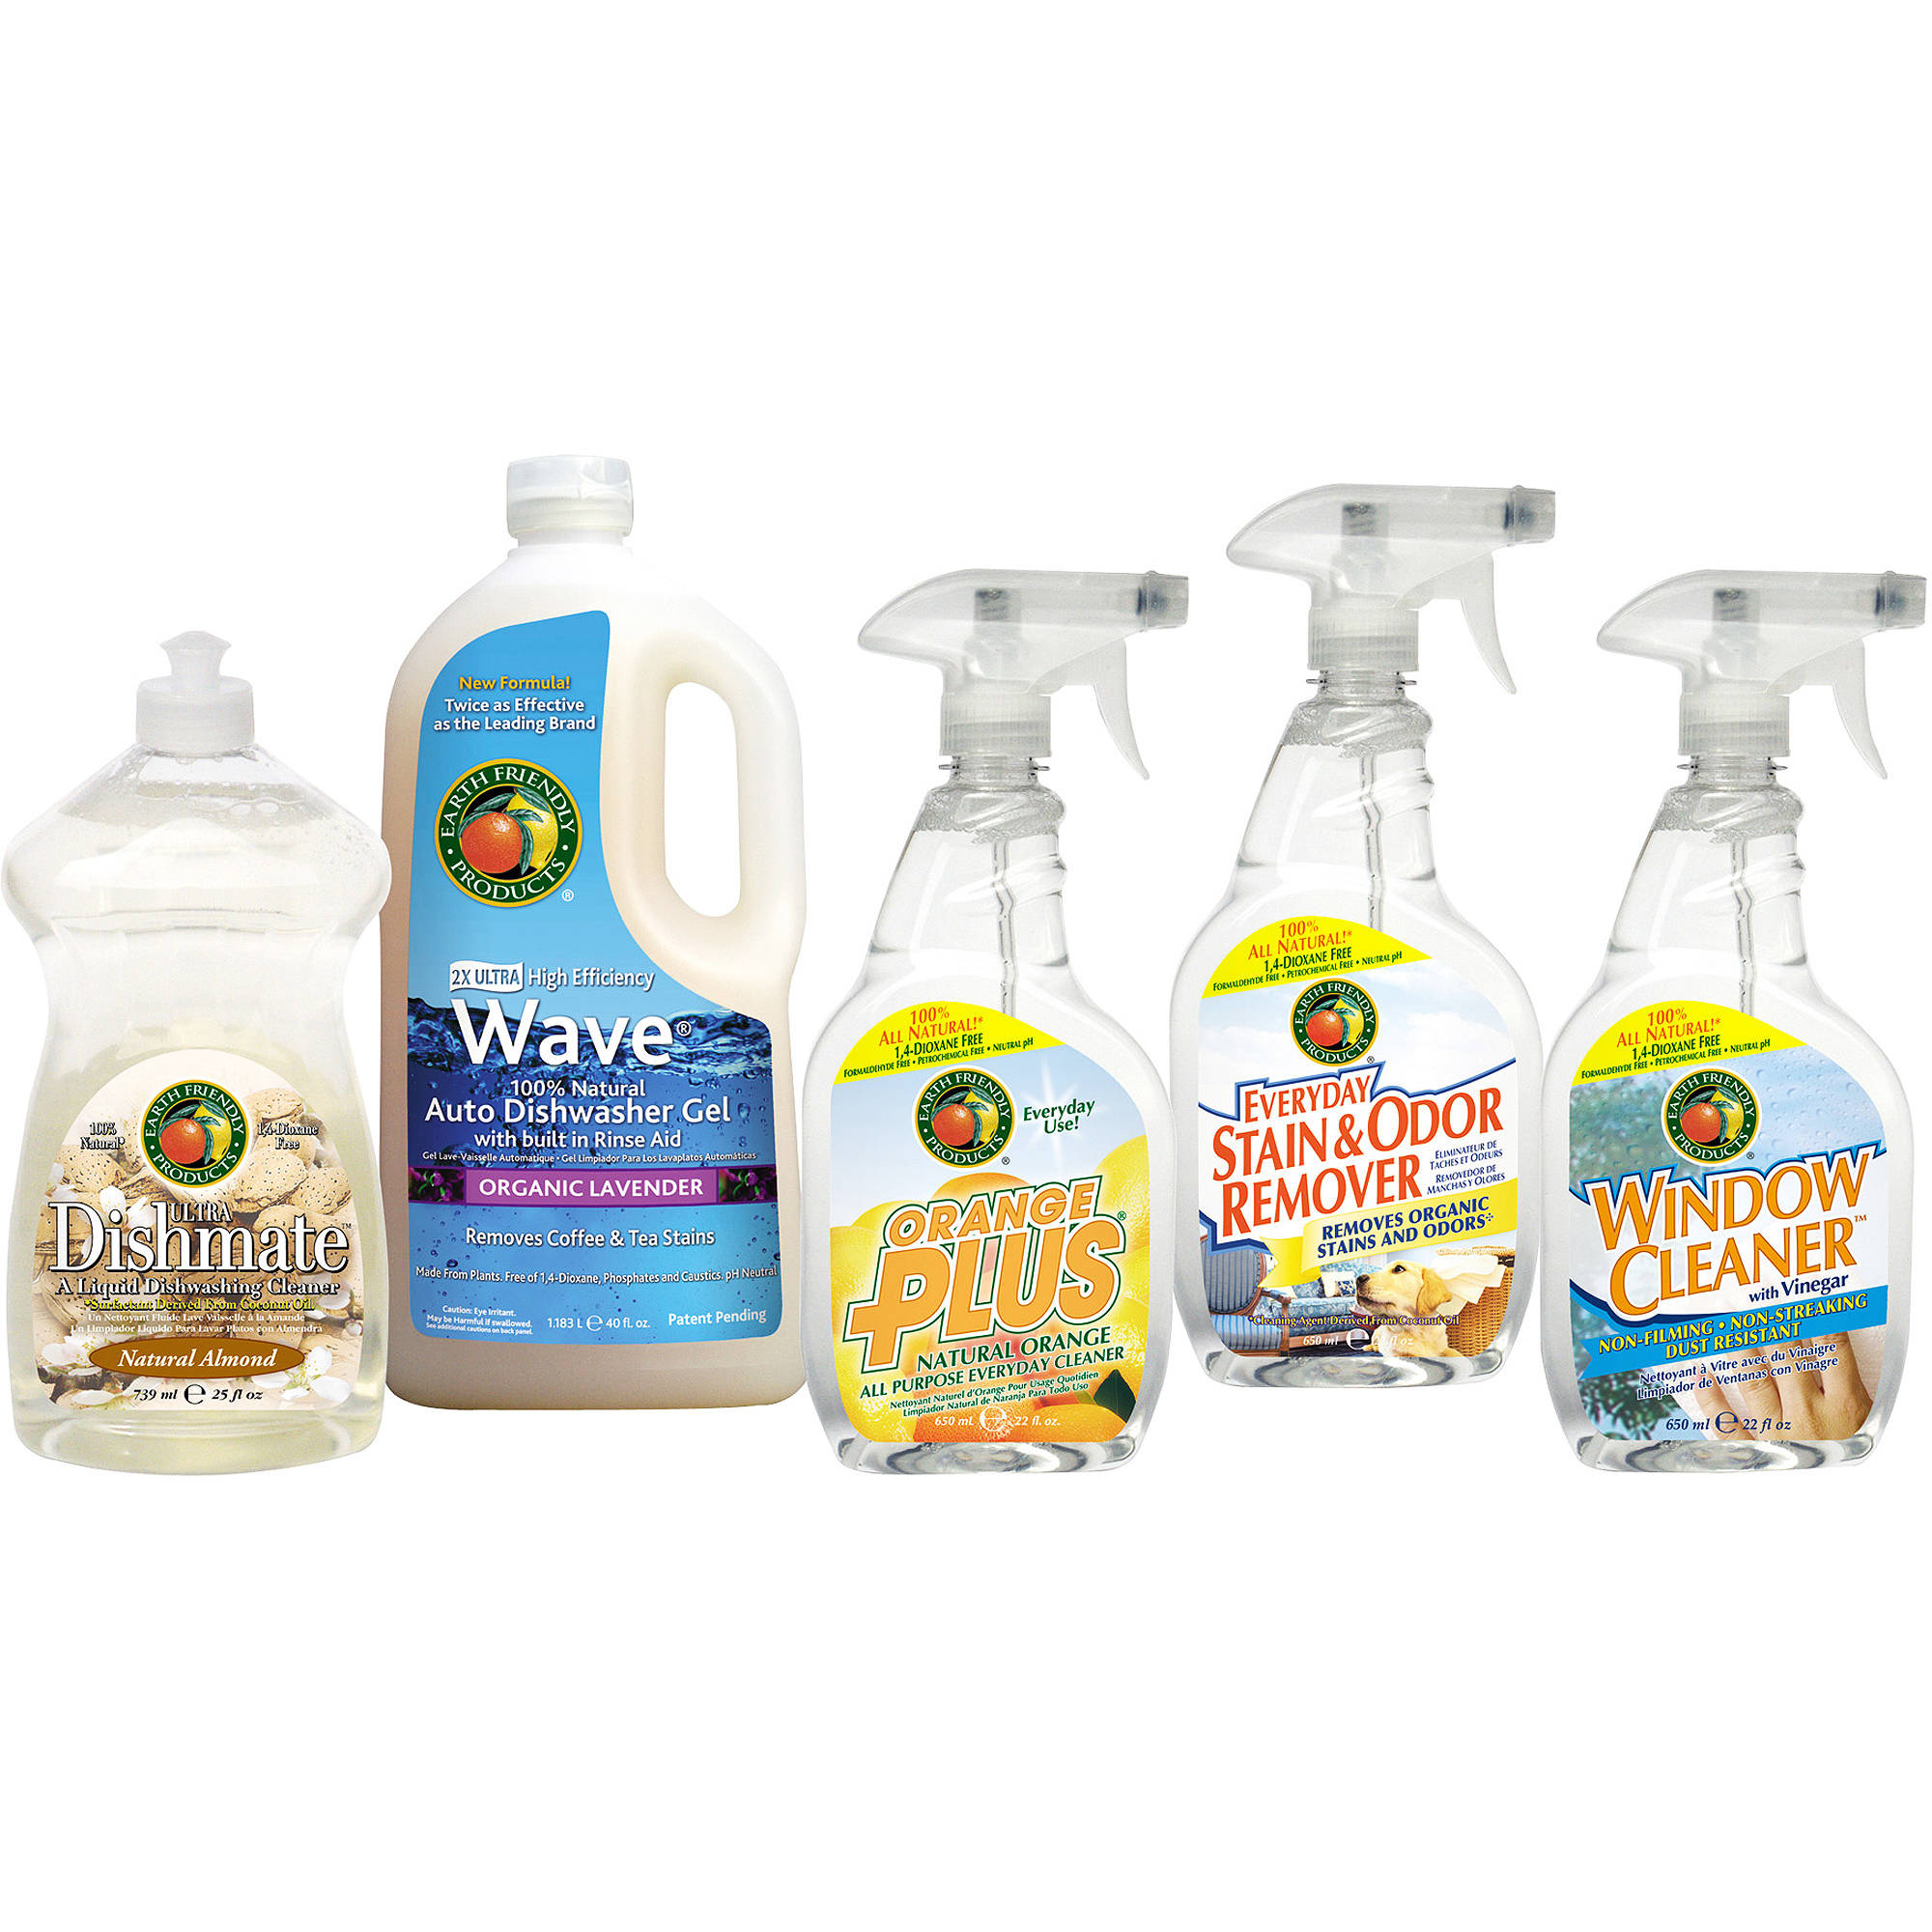 Earth Friendly Products Kitchen Clean Kit, 1ct